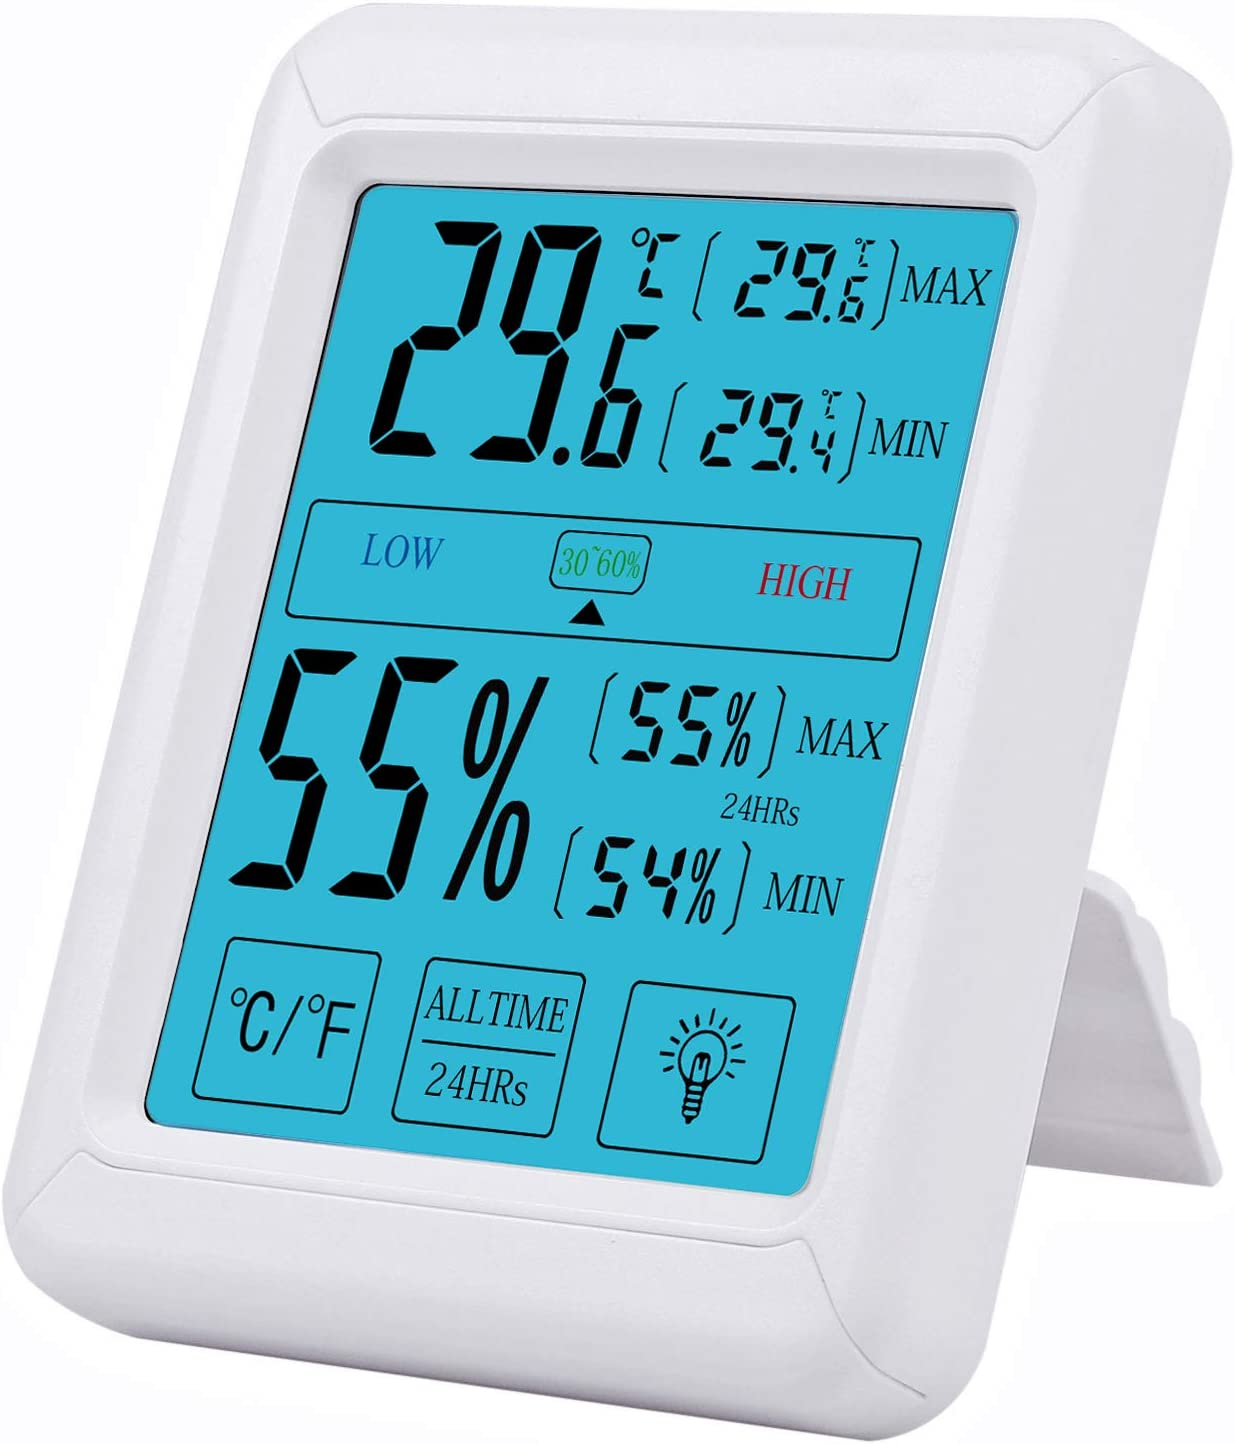 SEAL limited product Neoteck Digital Hygrometer Indoor Special price for a limited time wit Thermometer Humidity Gauge